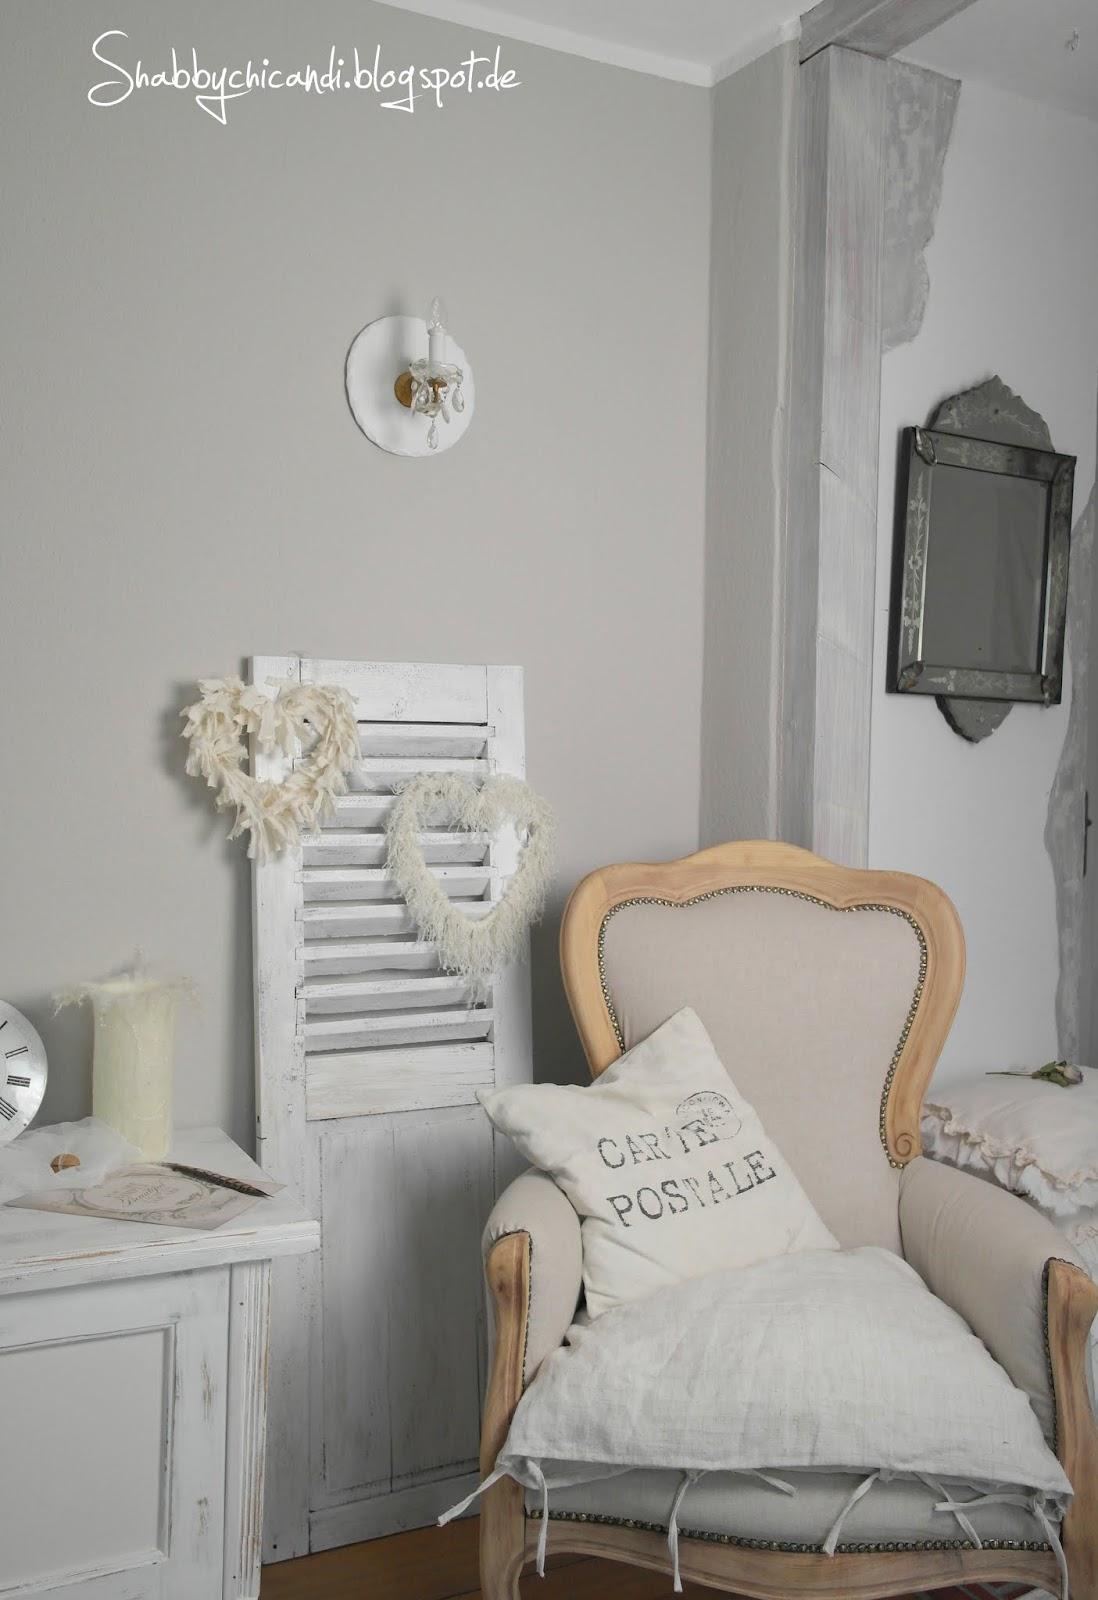 shabby chic and i shabby chic diy und deko februar 2015. Black Bedroom Furniture Sets. Home Design Ideas